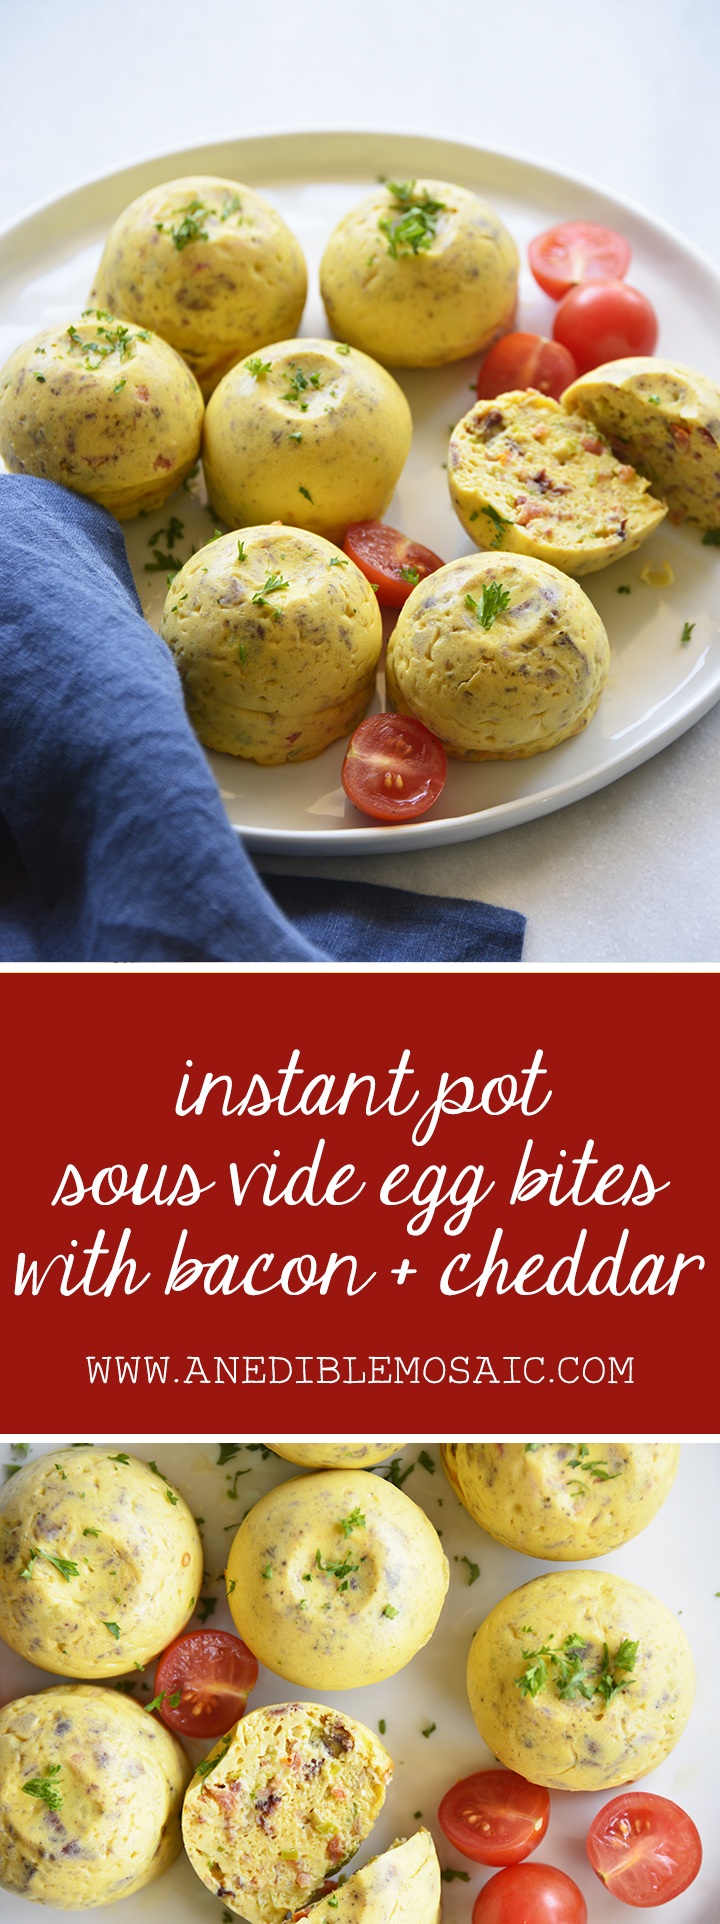 Instant Pot Sous Vide Egg Bites with Bacon and Cheddar Pin